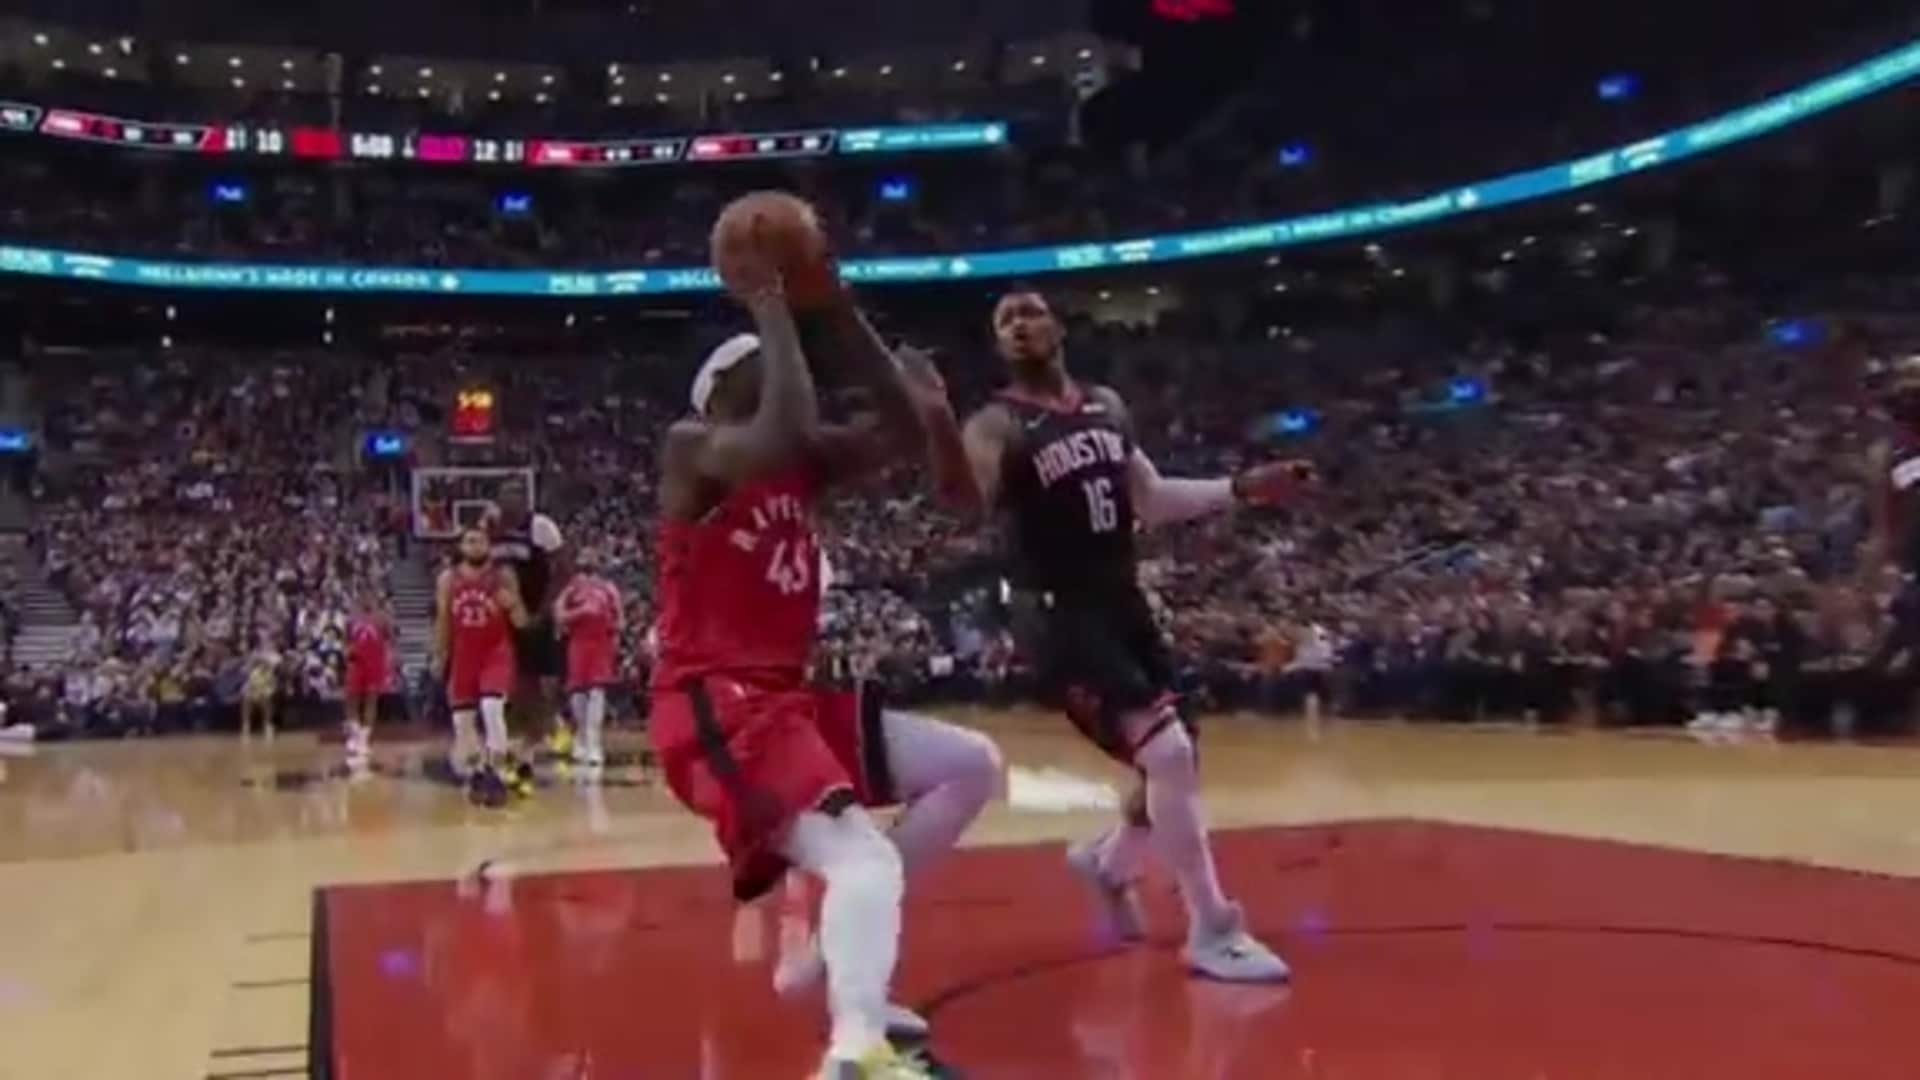 Raptors Highlights: Siakam Layup - December 5, 2019